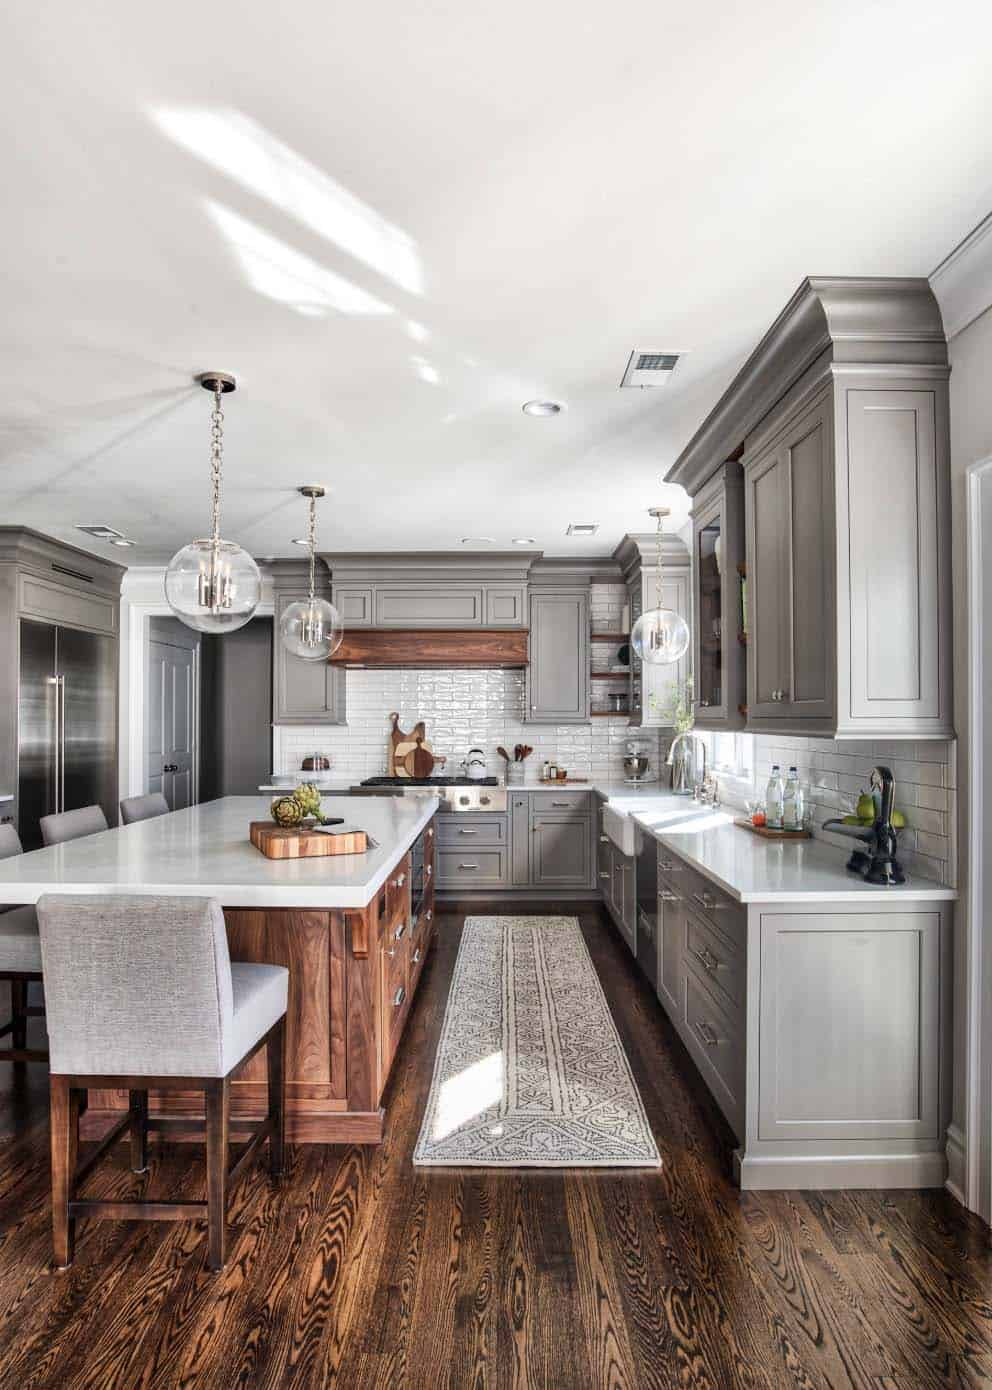 Kitchen Ideas: 25+ Absolutely Gorgeous Transitional Style Kitchen Ideas